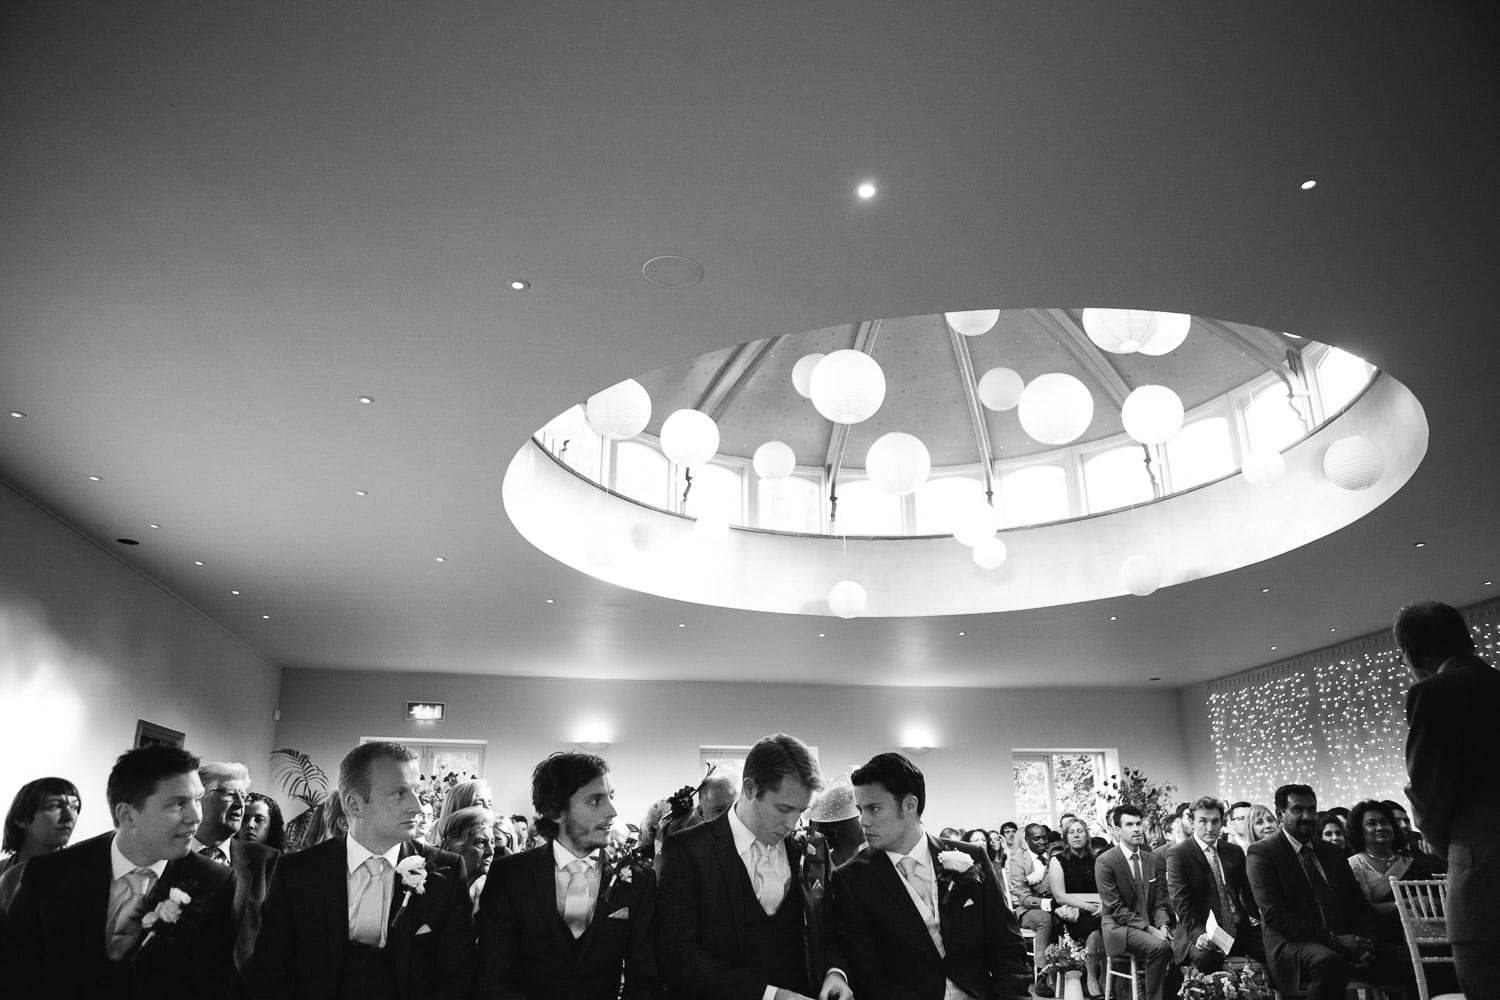 Groom and groomsment prepare for the bride's entrance in the main hall